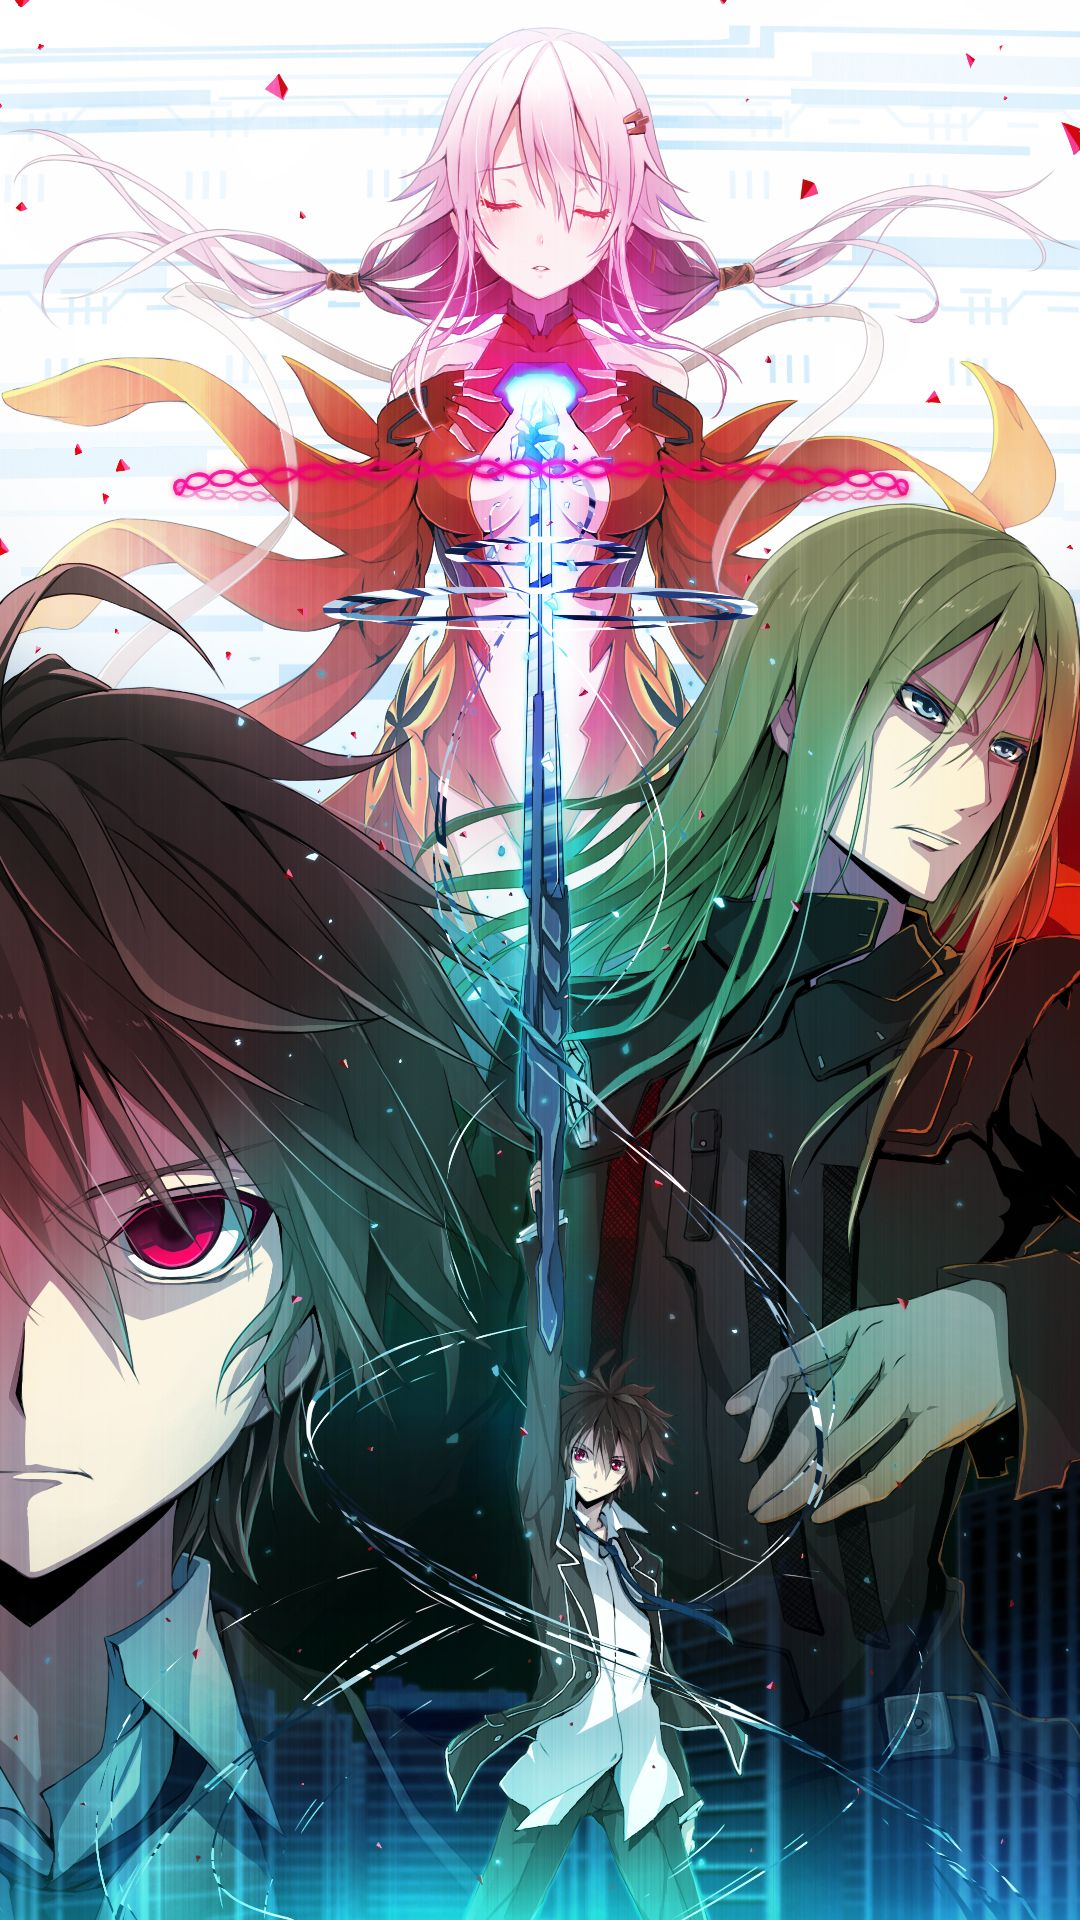 Day 6 anime I want to se, but haven't yet Guilty Crown